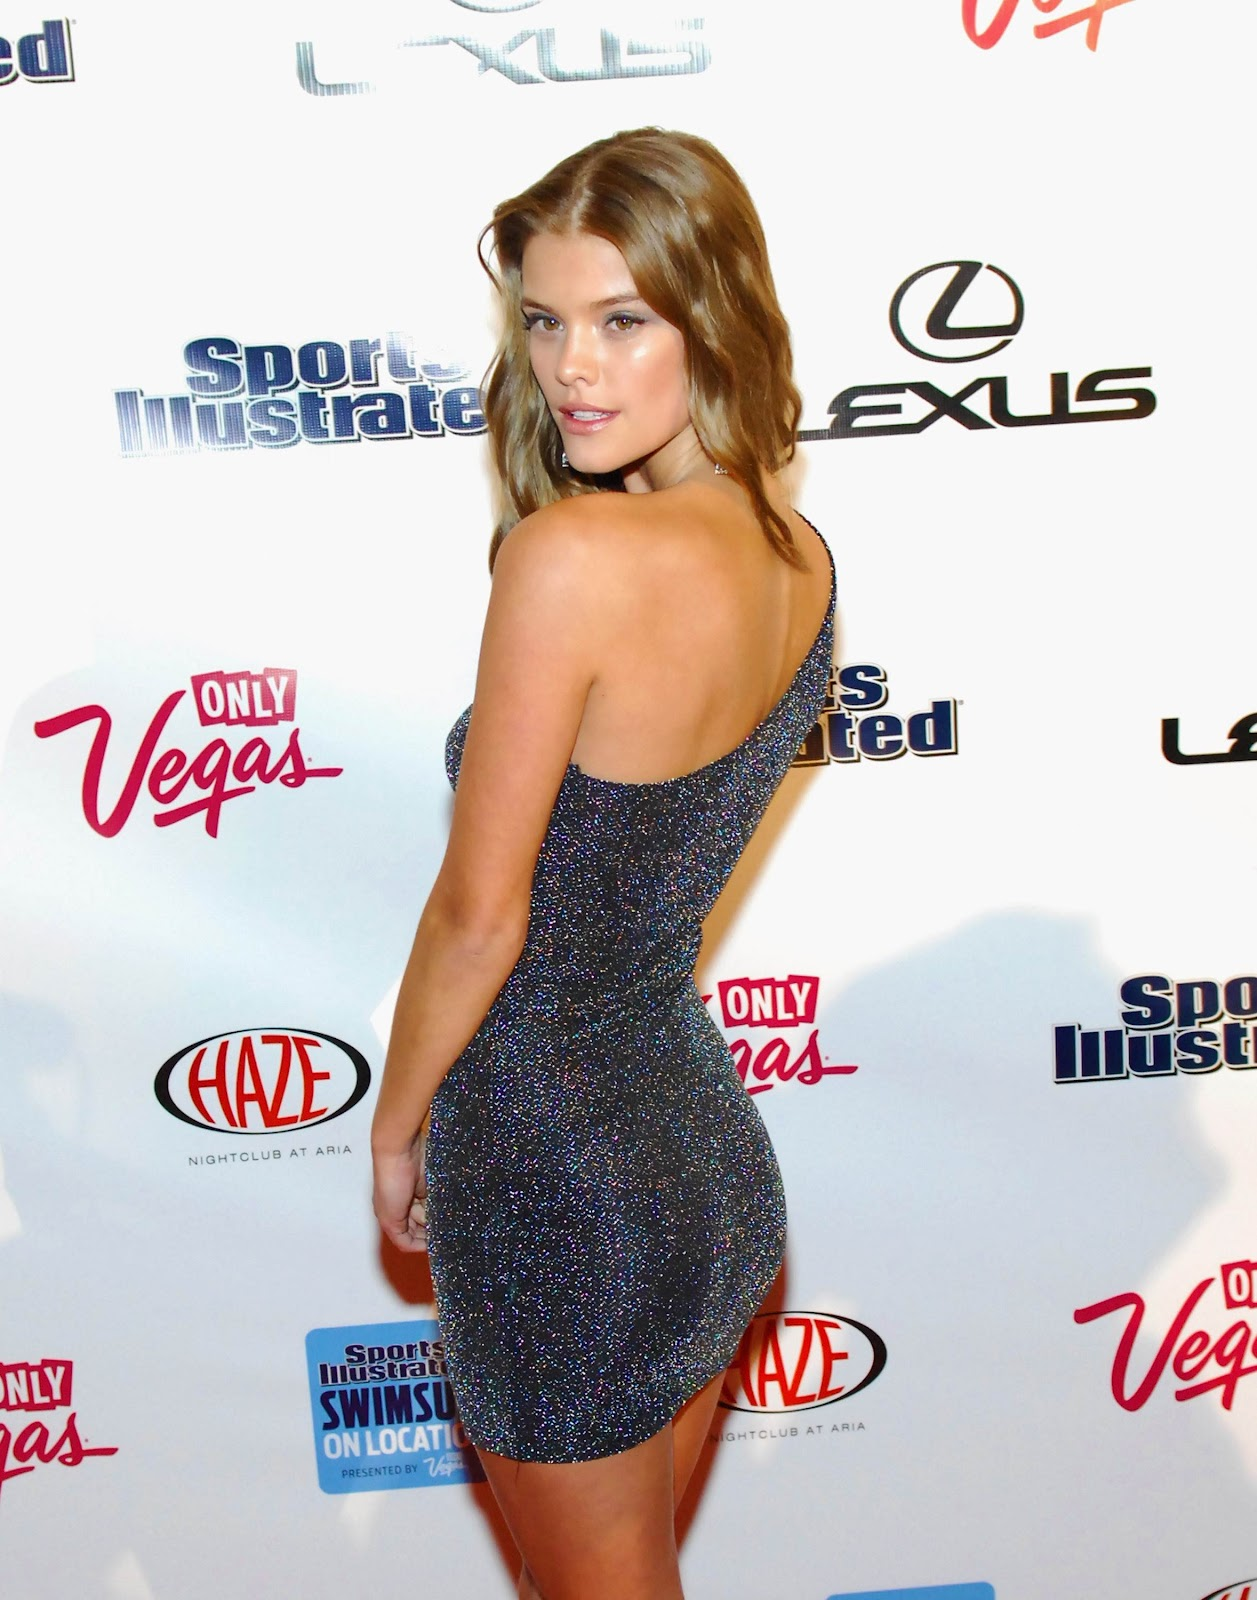 nina-agdal-si-swimsuit-party-2012-01